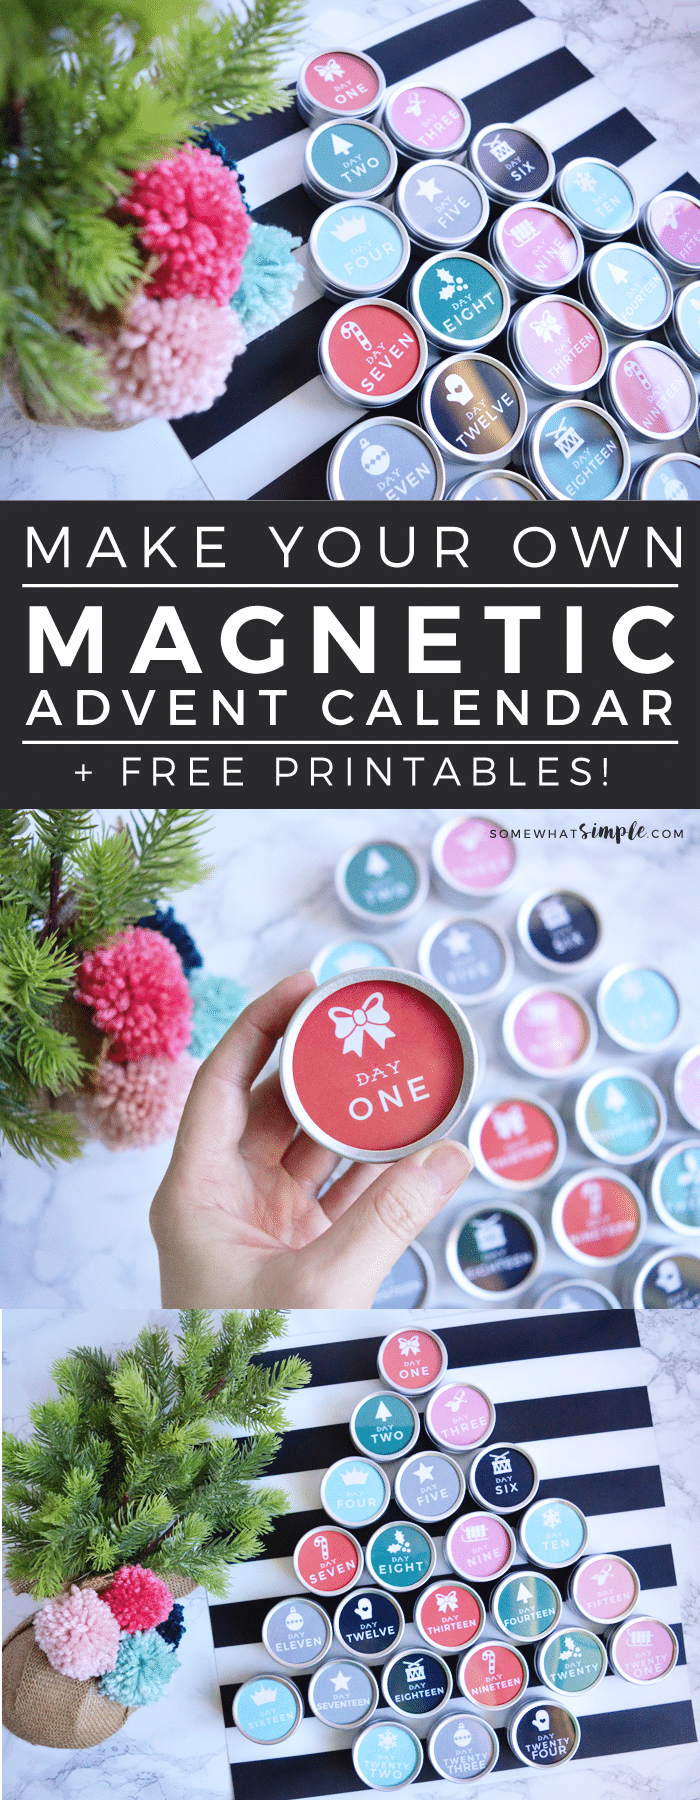 We can't get enough of this darling magnetic advent calendar! With a few simple supplies, you'll have a genius countdown you can't wait to use every year!